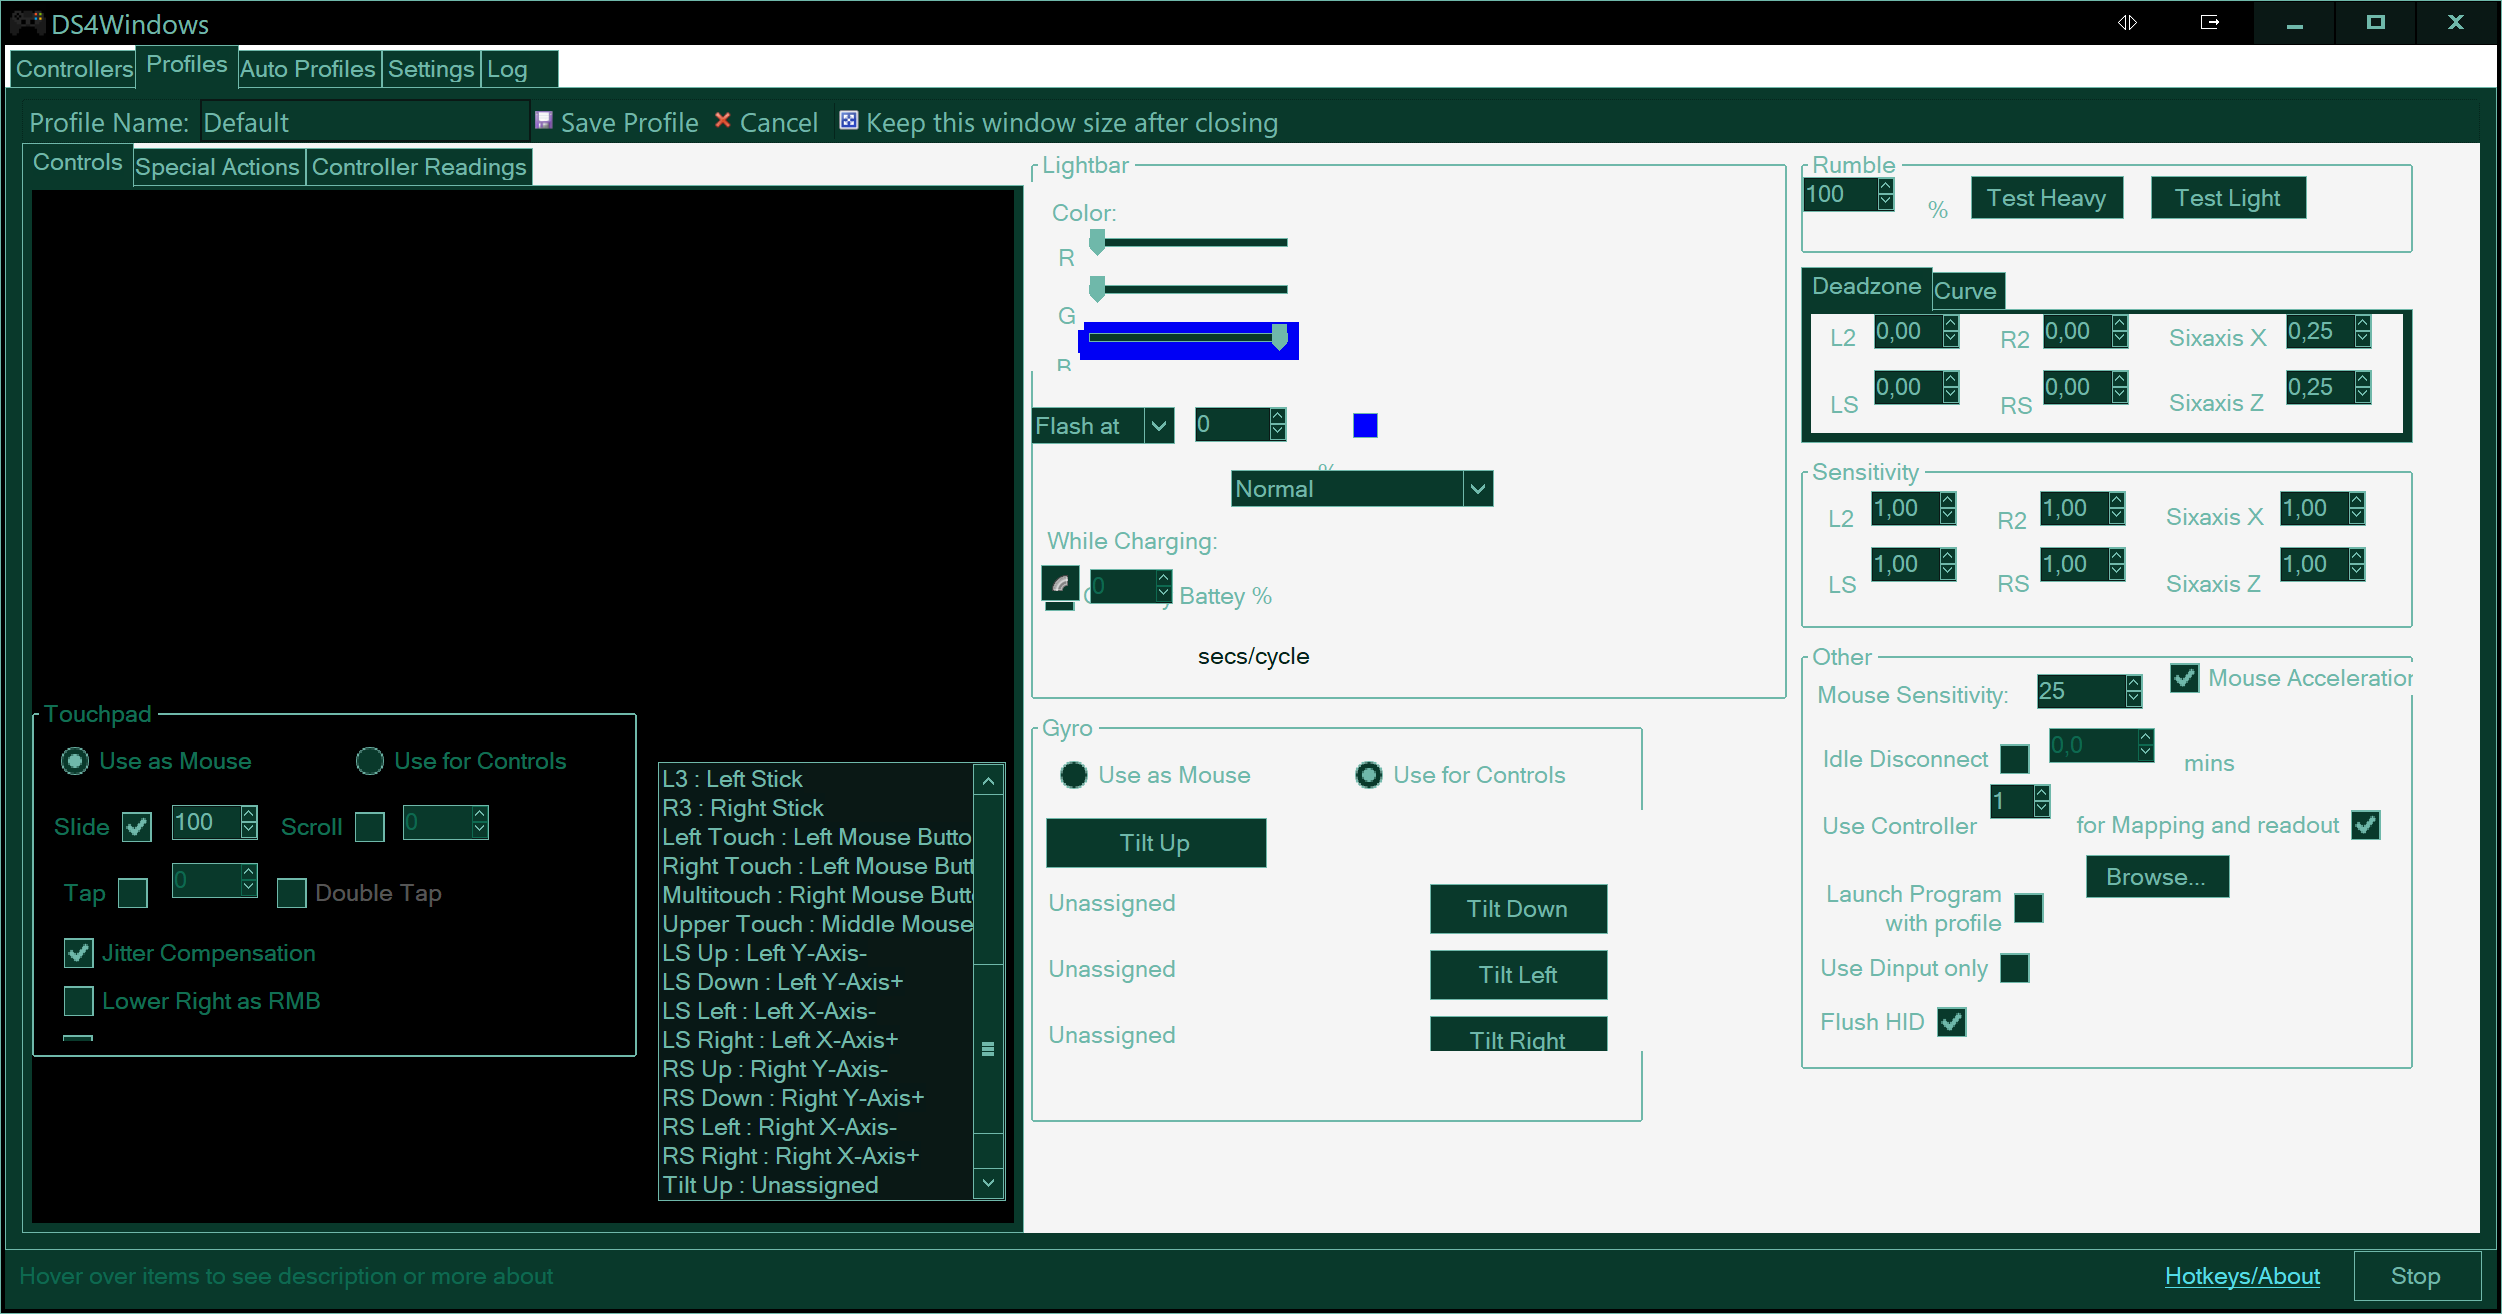 UI problems · Issue #358 · Jays2Kings/DS4Windows · GitHub